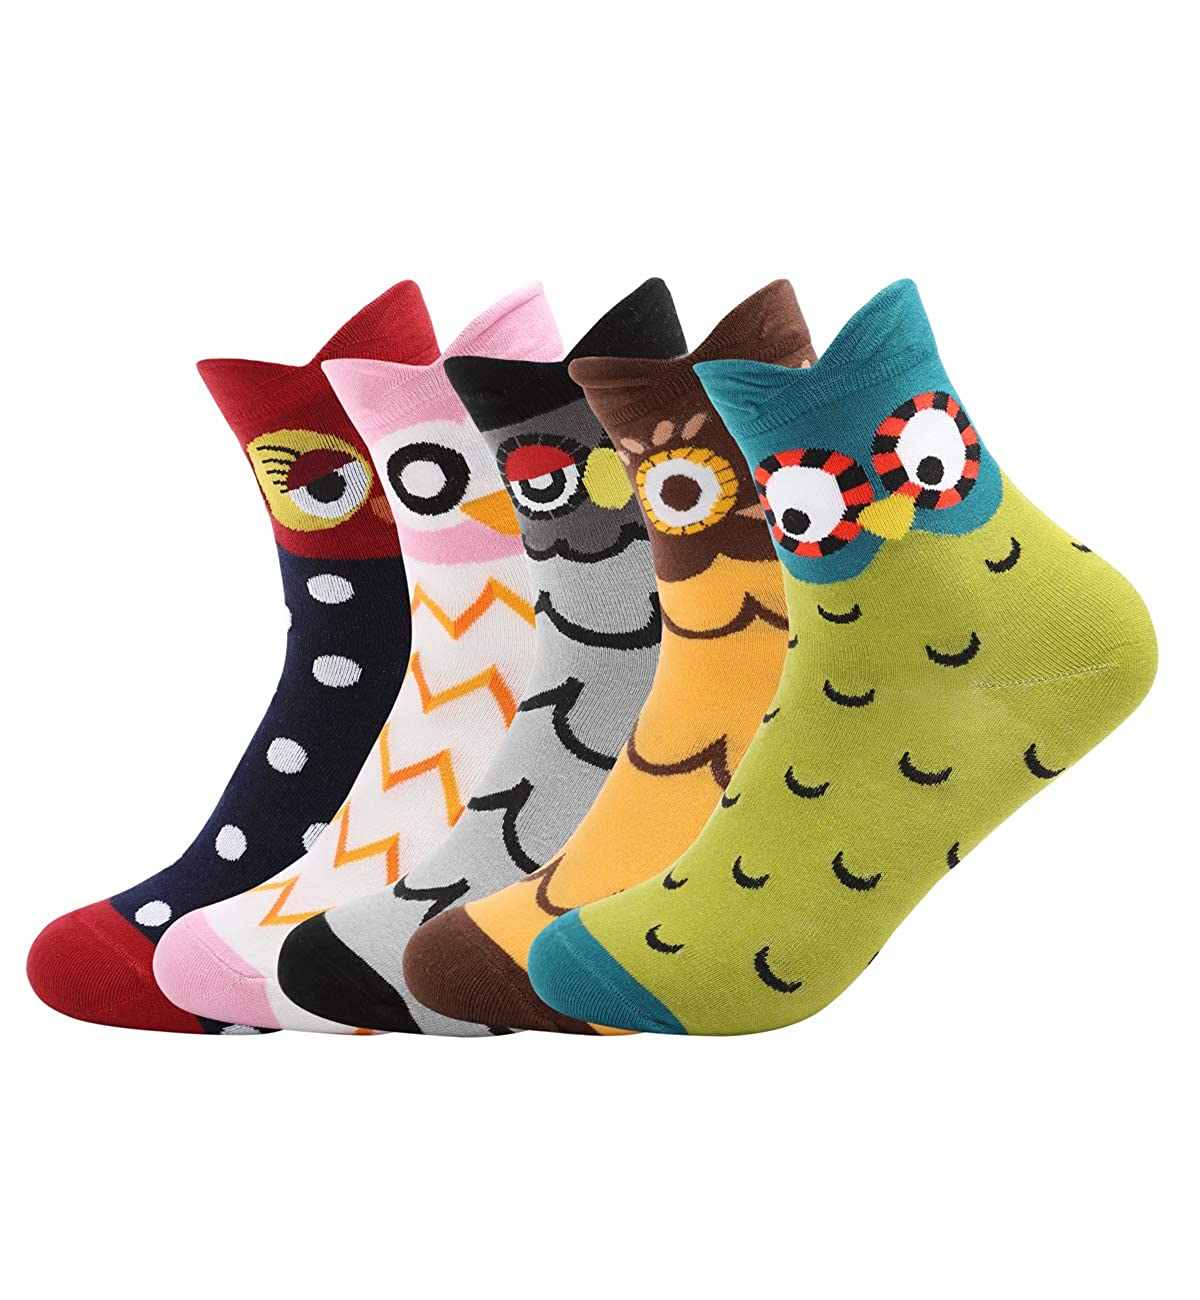 DJT FASHION Women's Fun Socks Cute Animals Funky Novelty Cotton Gift 4-6 Pairs D186A24ZH300^^J